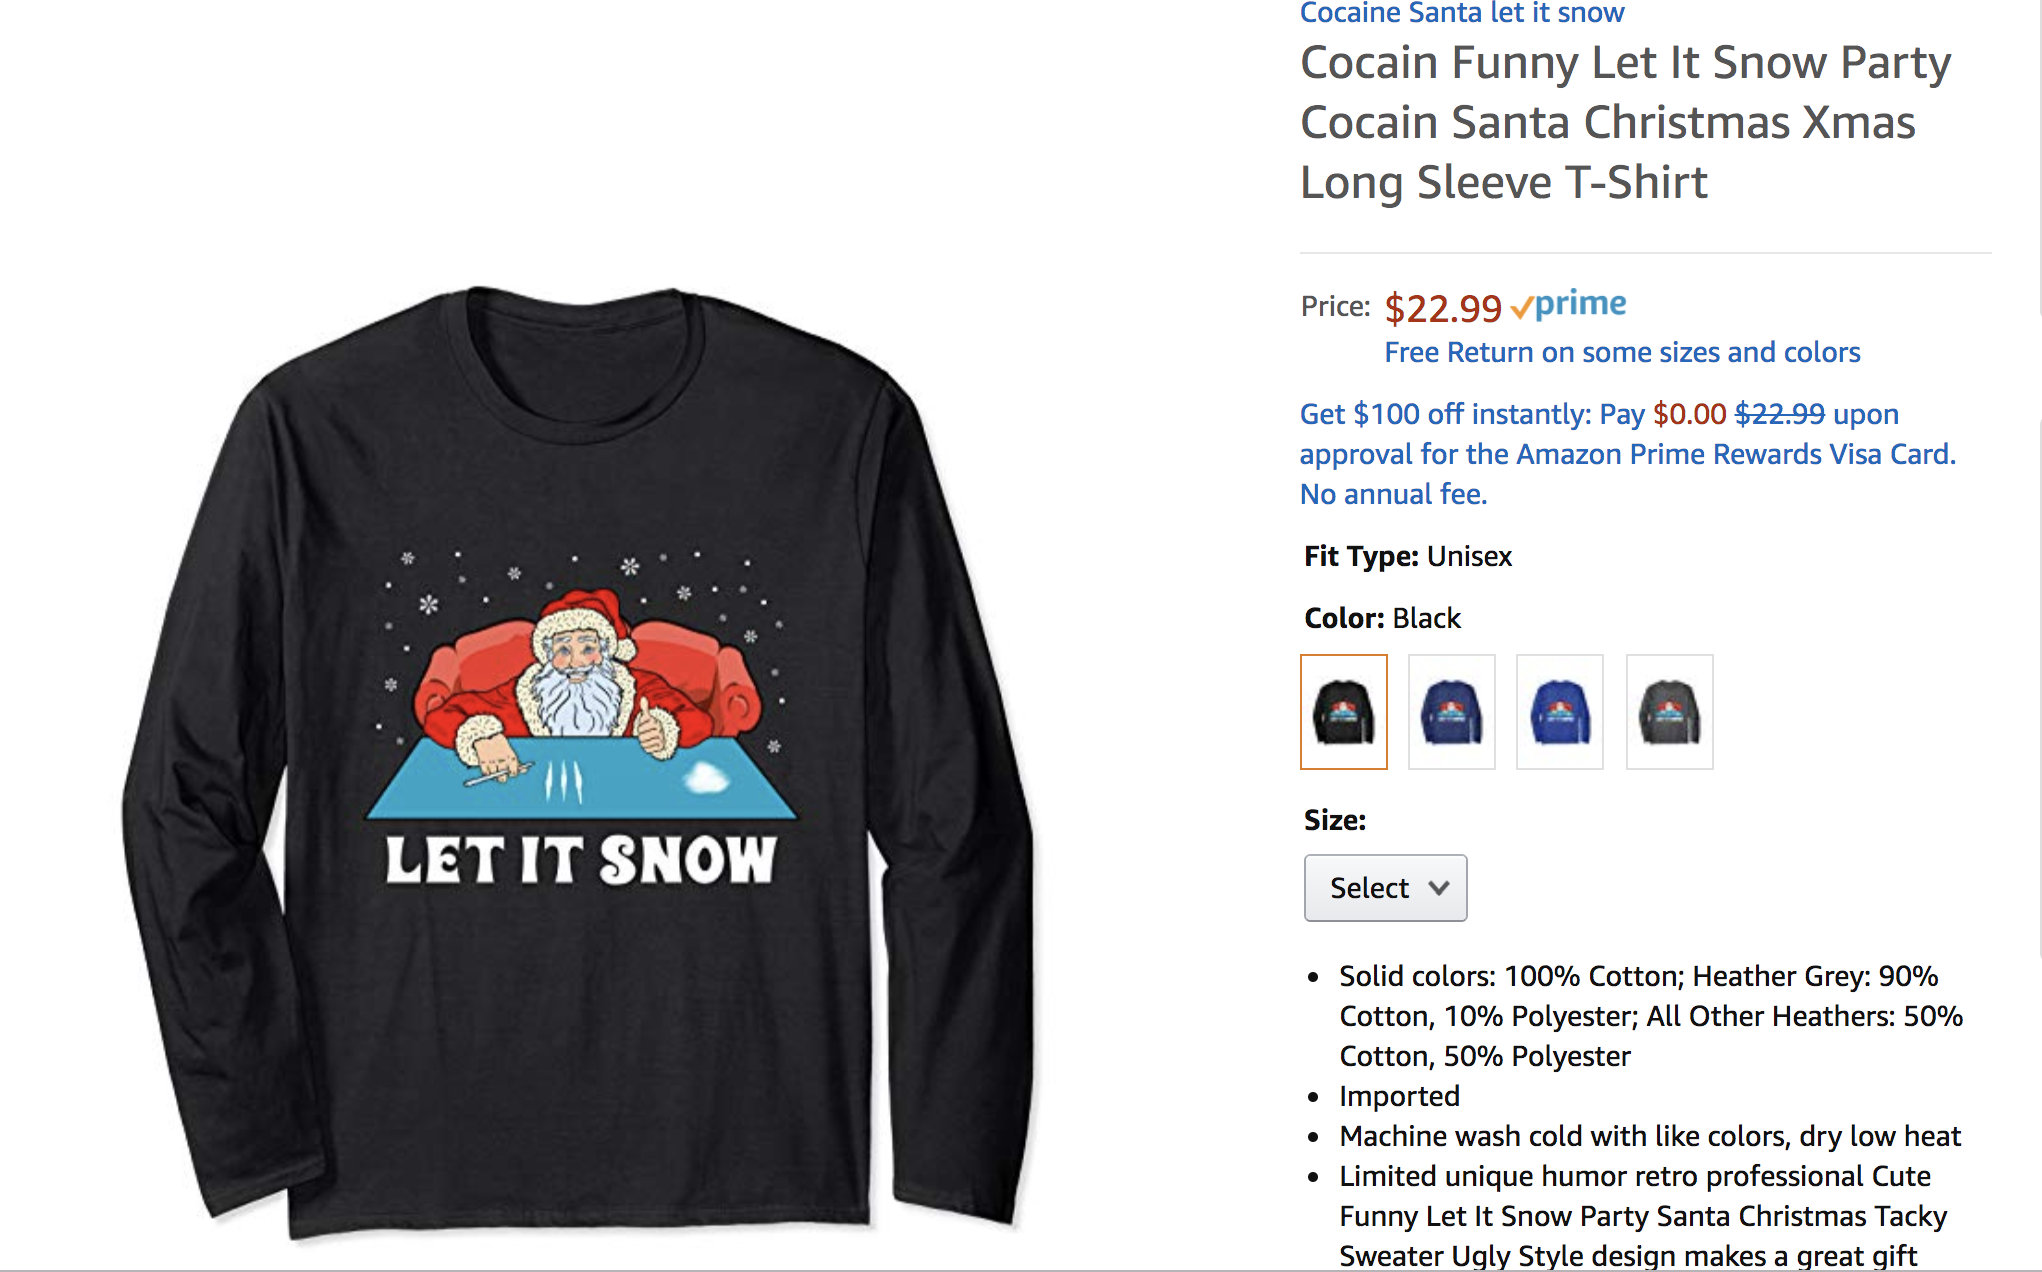 Amazon Is Still Selling Festive Christmas Sweaters Showing